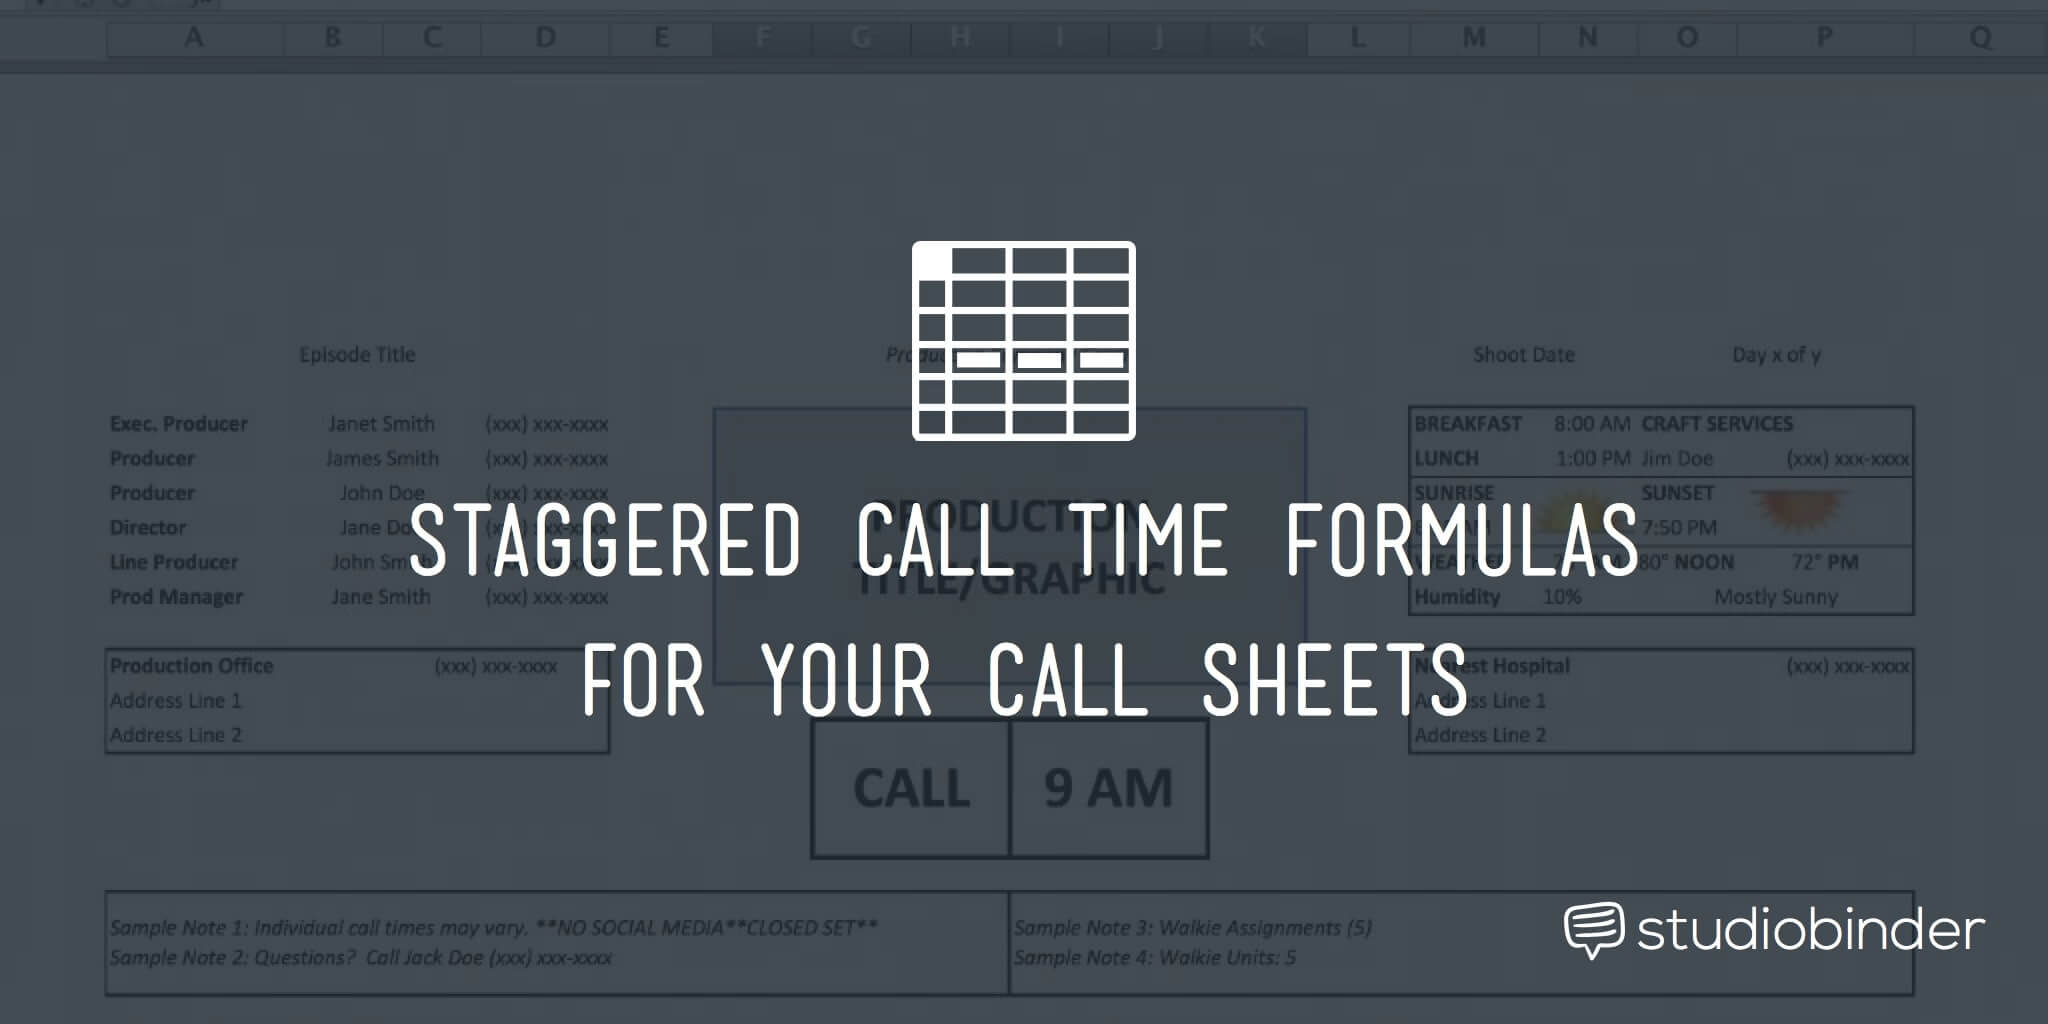 Call Time Formulas for Call Sheets